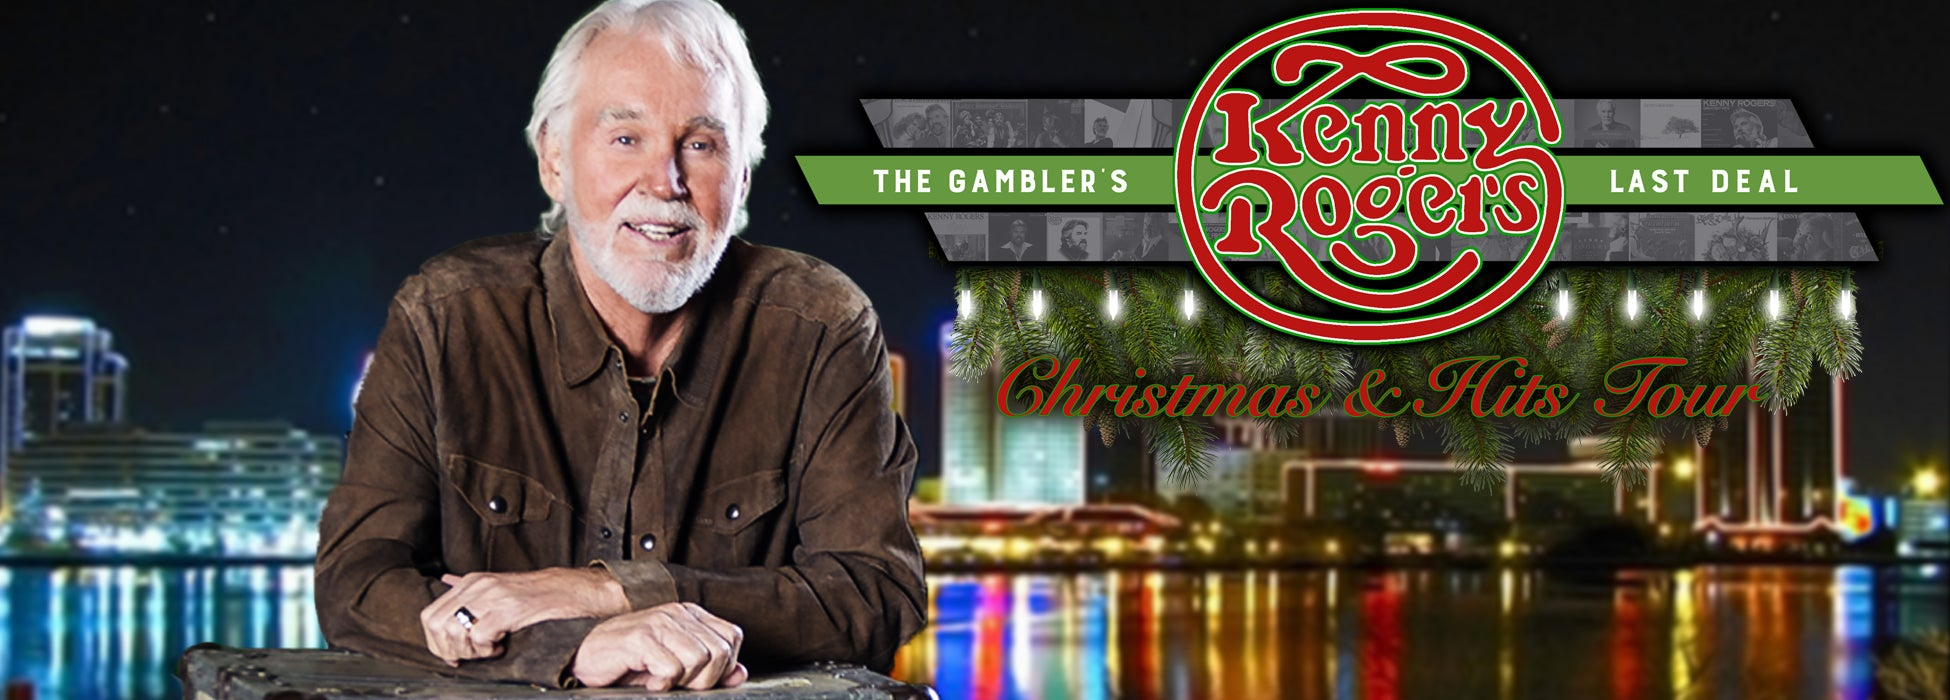 Kenny Rogers_Norfolk_1950x700_2.jpg